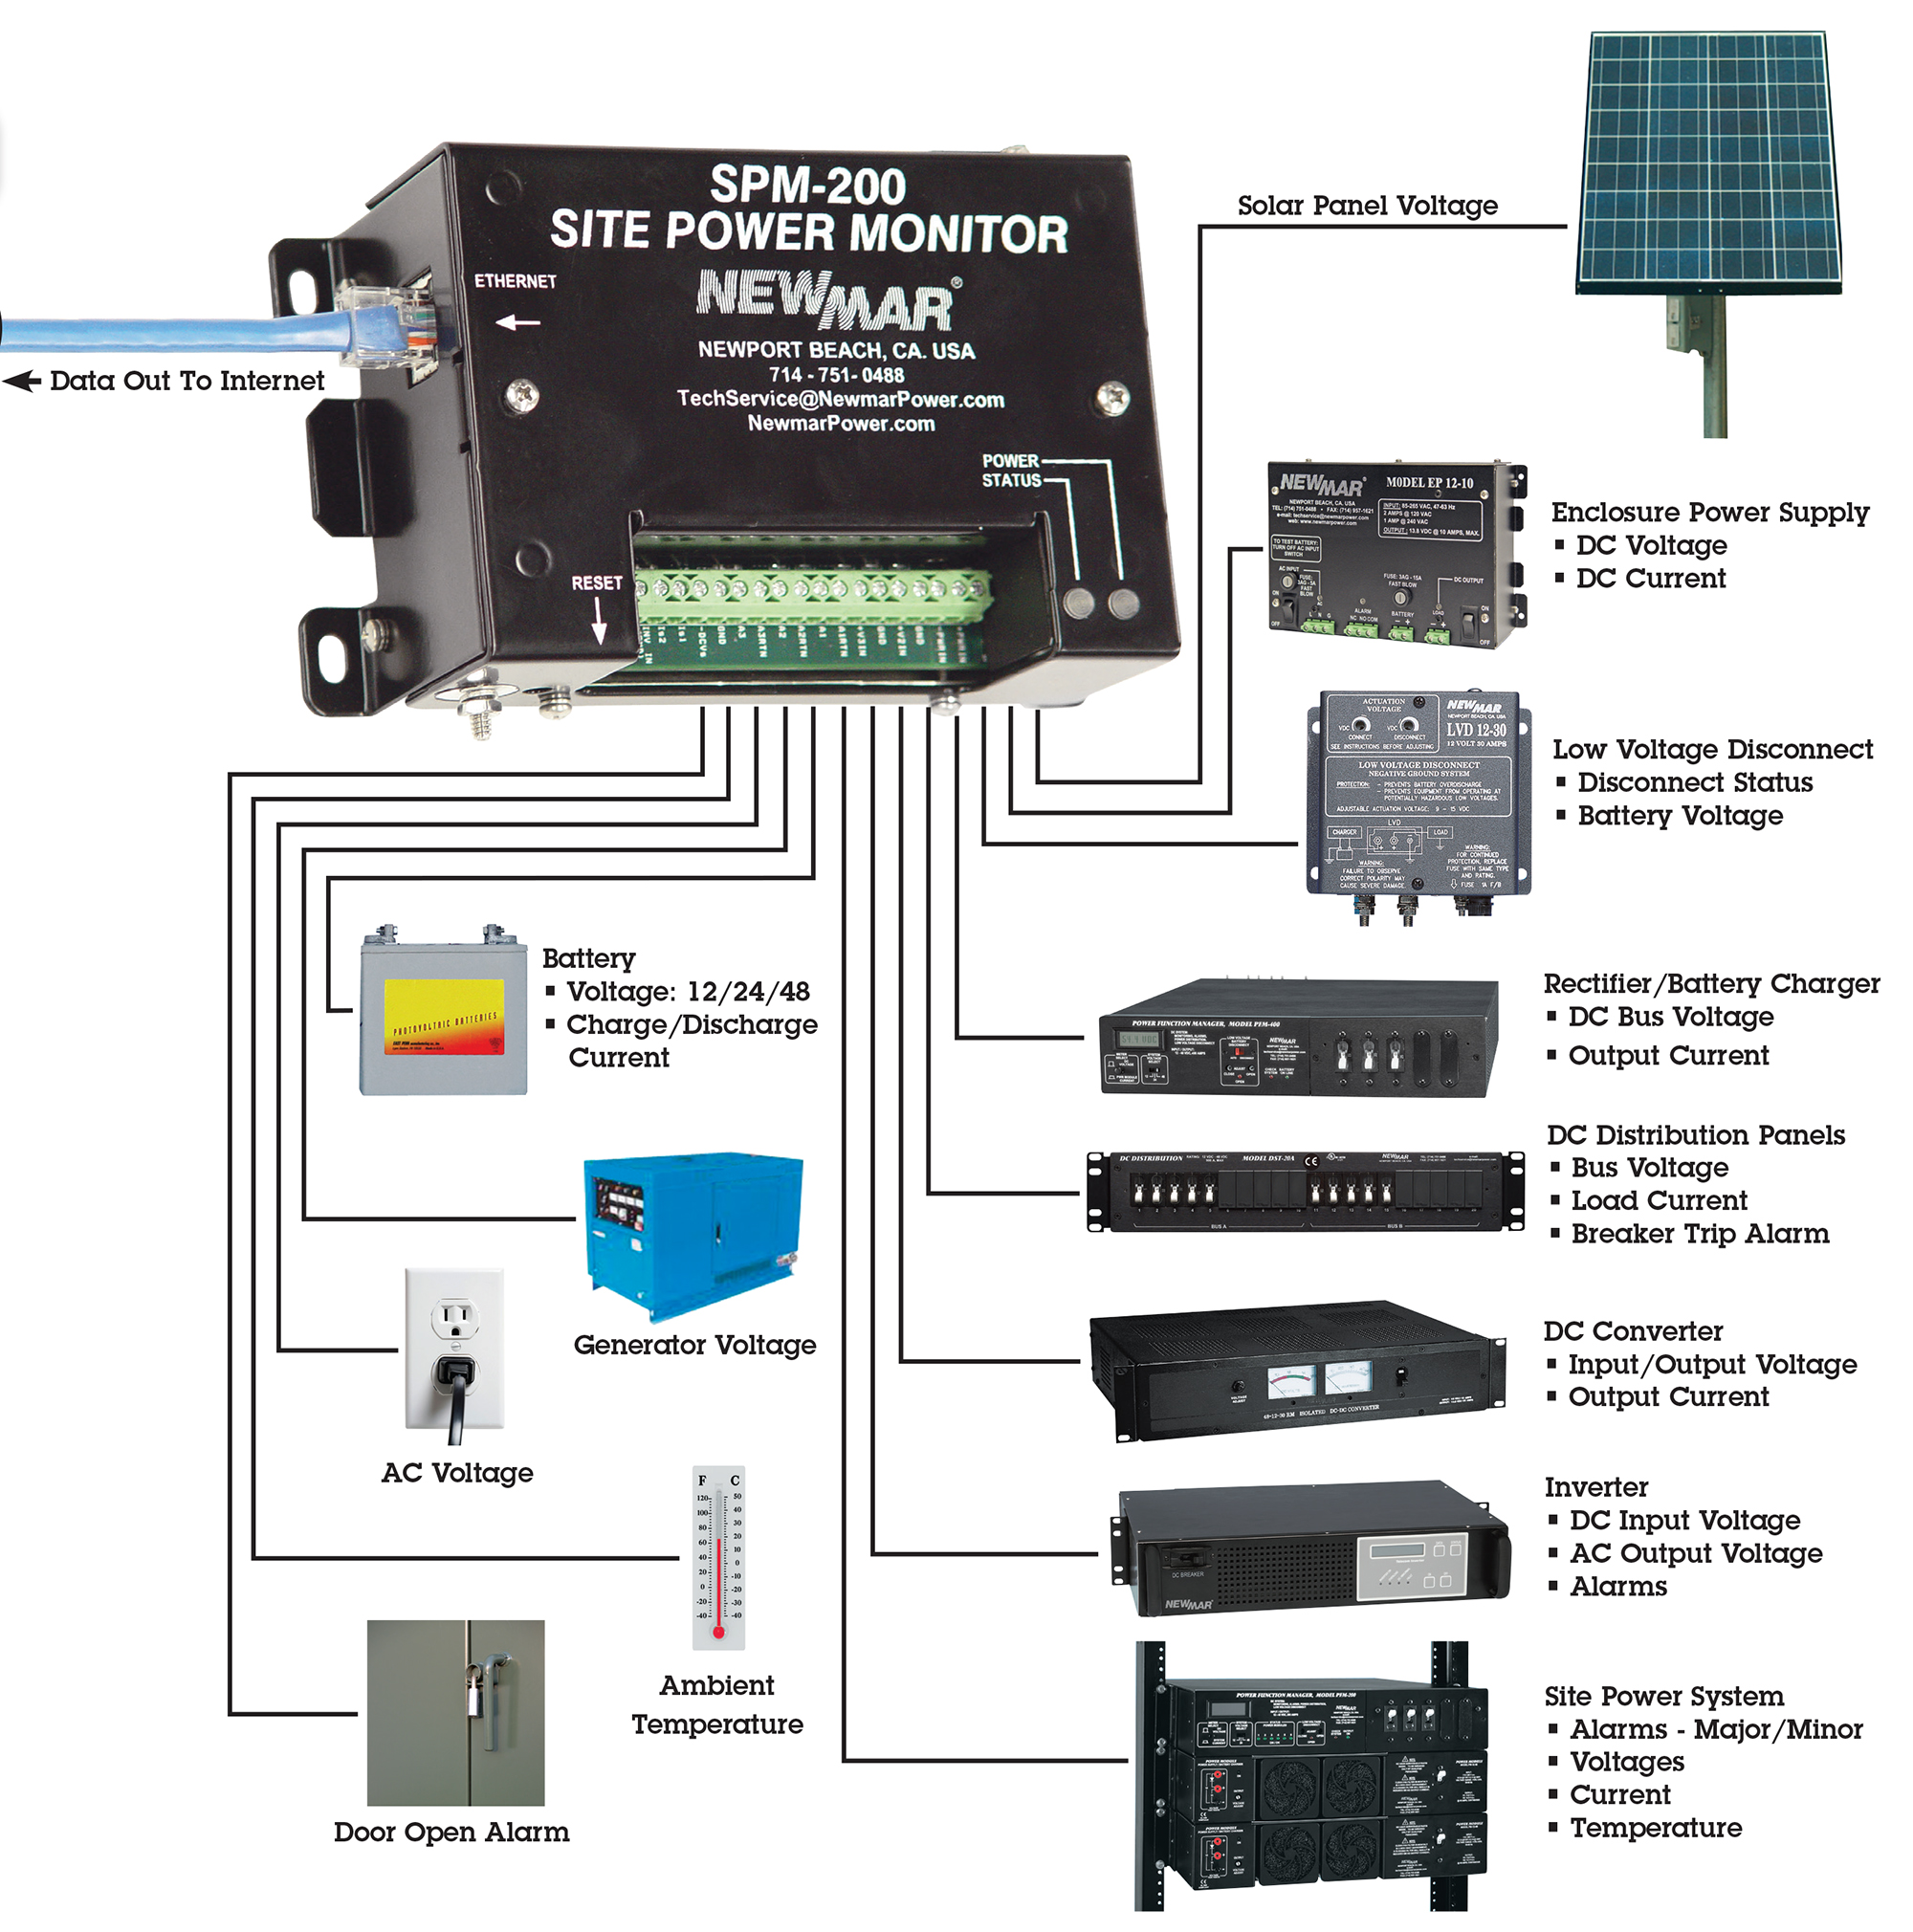 Remote Site Power Monitor, 12V DC, 24V DC, and 48V DC, model SPM-200, Remote Site Monitoring Of Critical DC Power Conditions Input Examples by Newmar Powering the Network